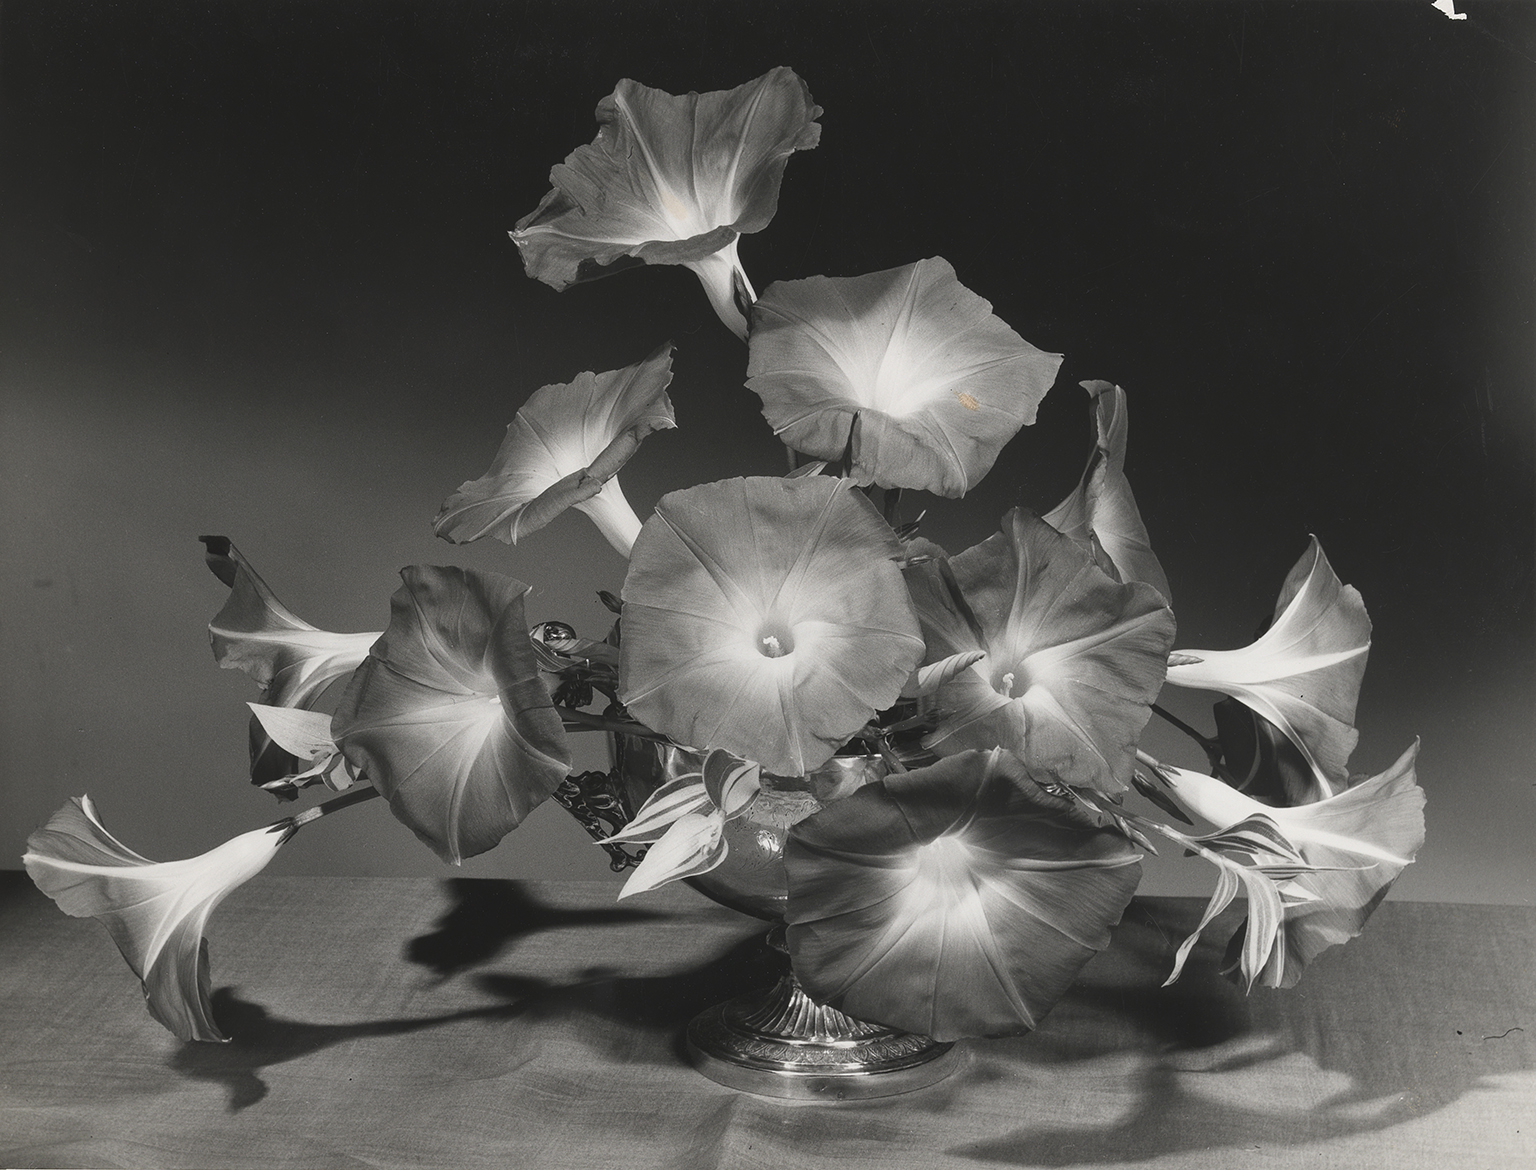 Morning glory arrangement by Constance Spry. Photo: Cowderoy & Moss Ltd, c.1930, RHS Lindley Collections